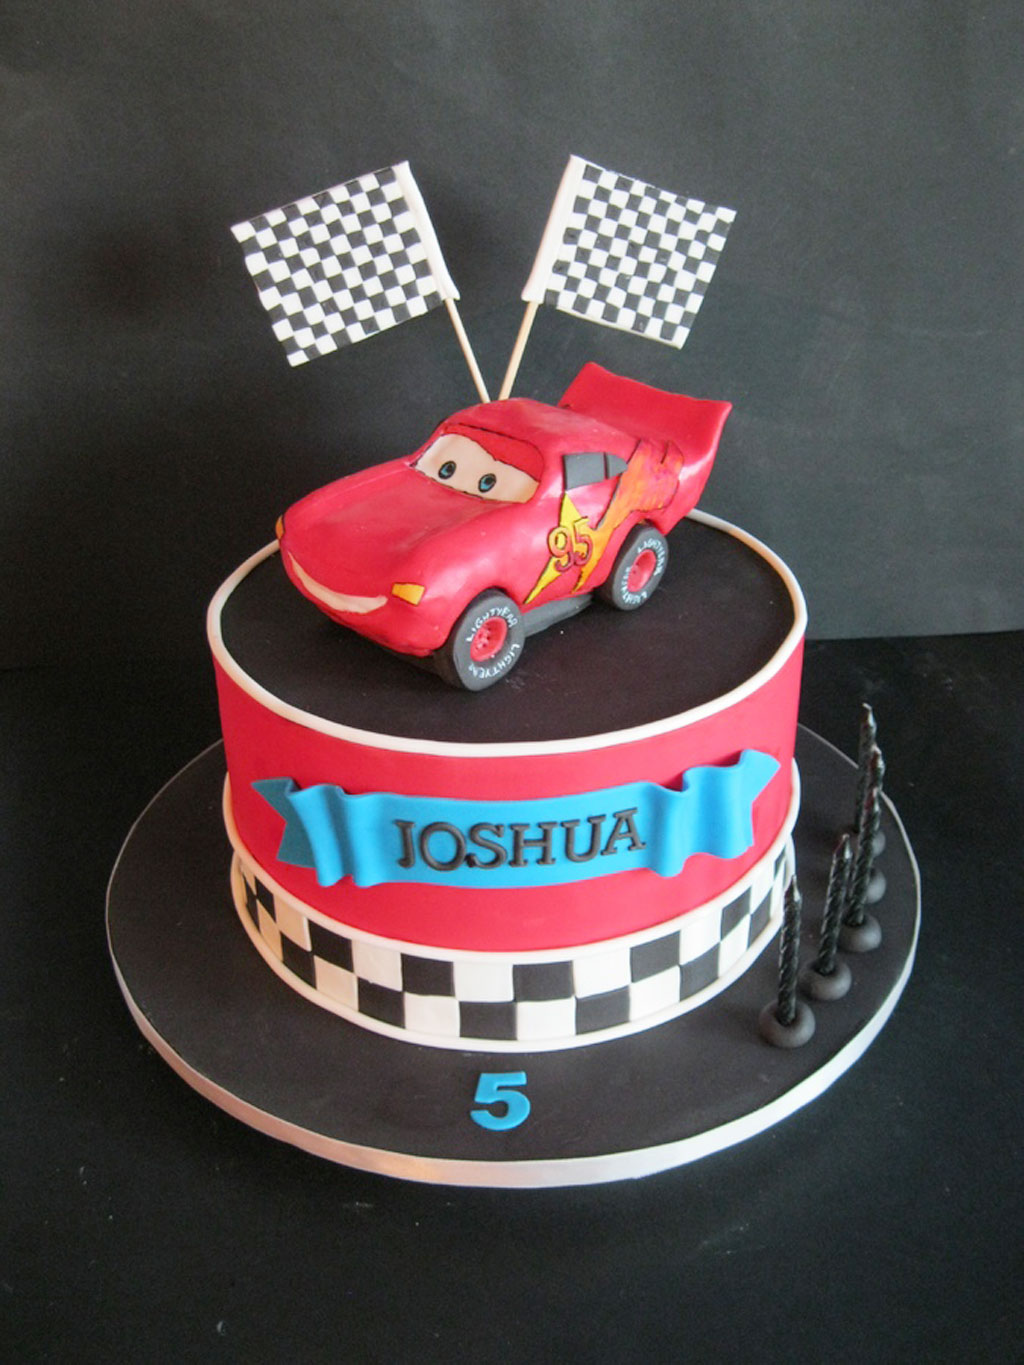 Lightning Mcqueen Car Cake Design Dmost for